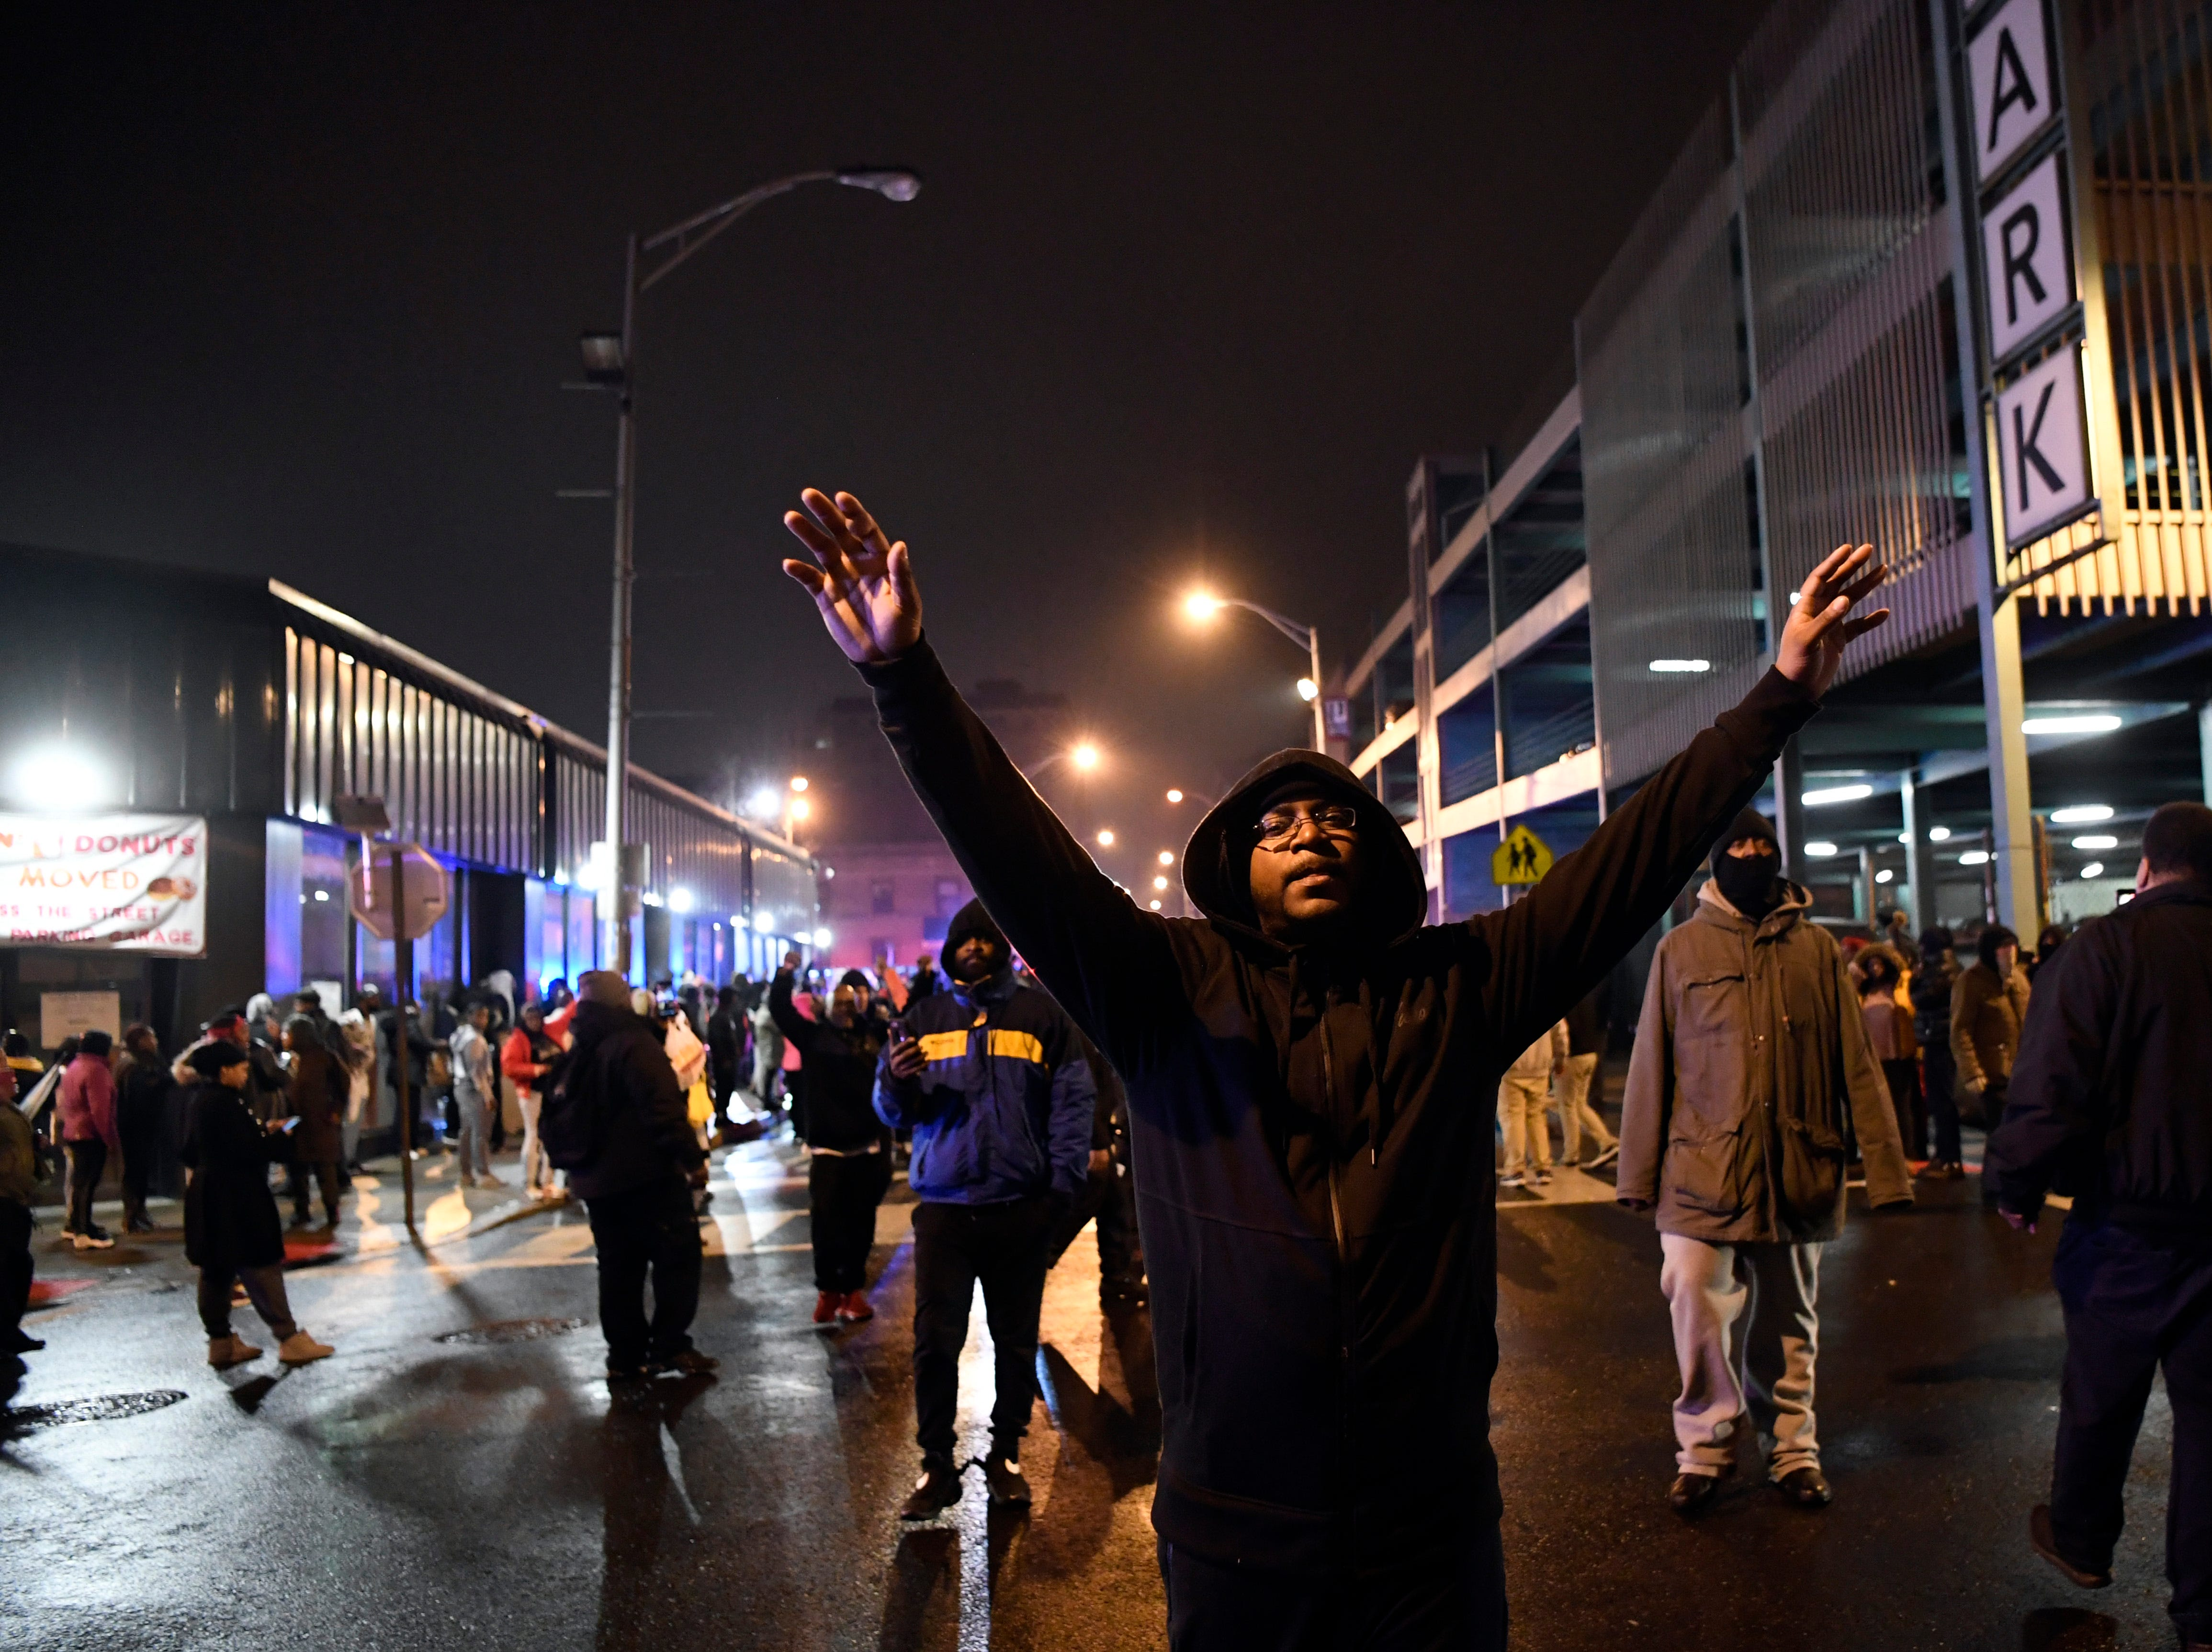 A man approaches the police line with his hands up during a rally for justice for Jameek Lowery on Tuesday, Jan. 8, 2019, in Paterson. Lowery died two days after going on Facebook Live claiming that someone was out to kill him and asking the Paterson Police Department for help.